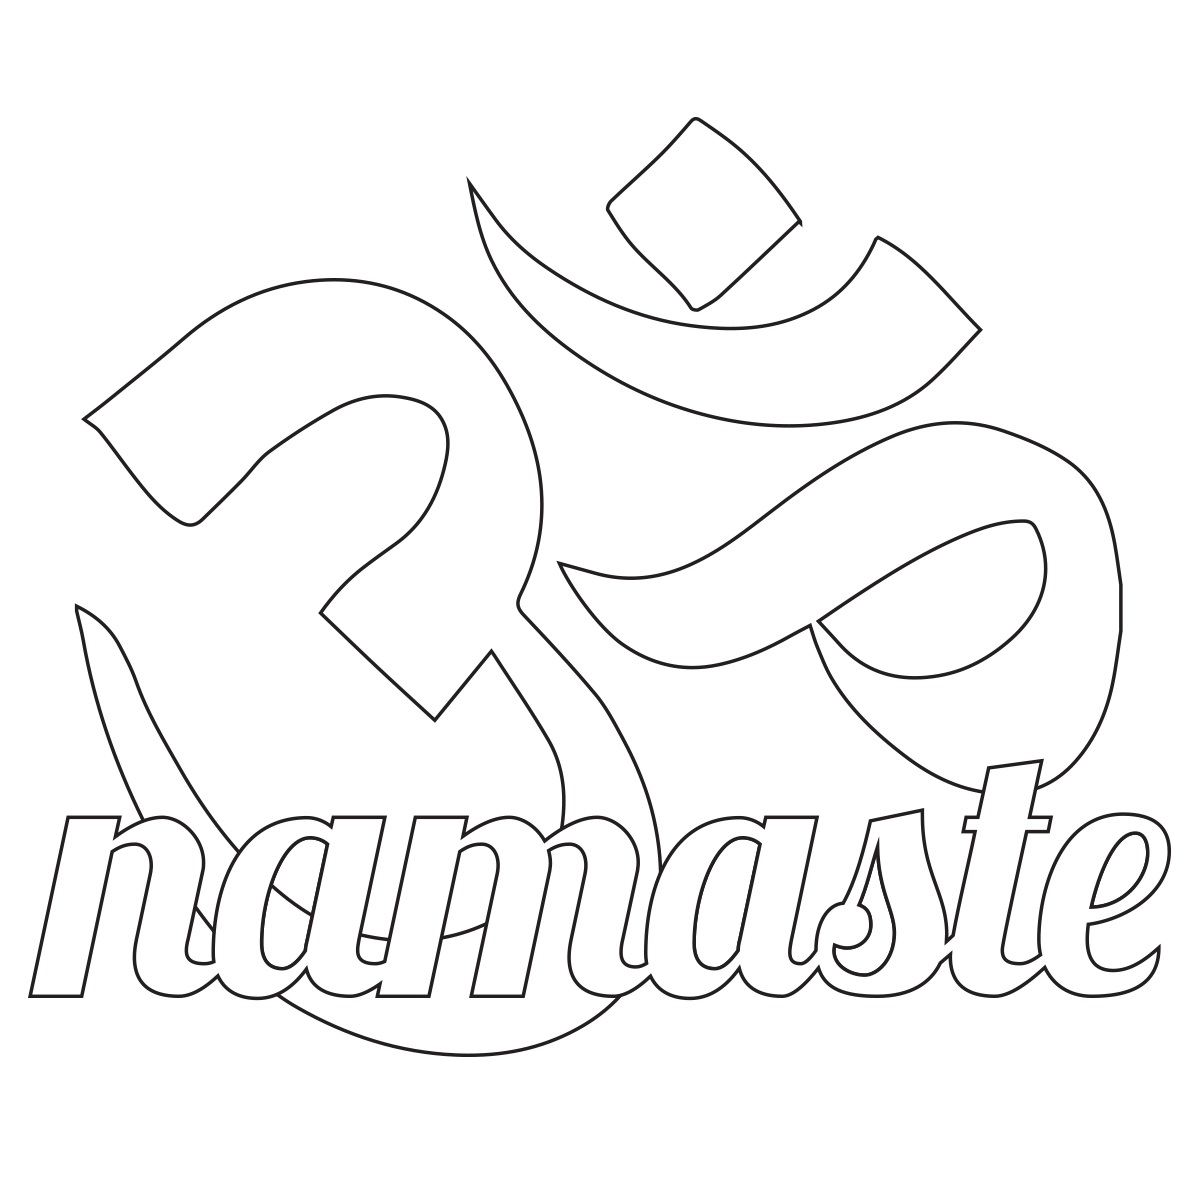 Free Namaste Om Yoga Coloring Page | Free adult coloring ...